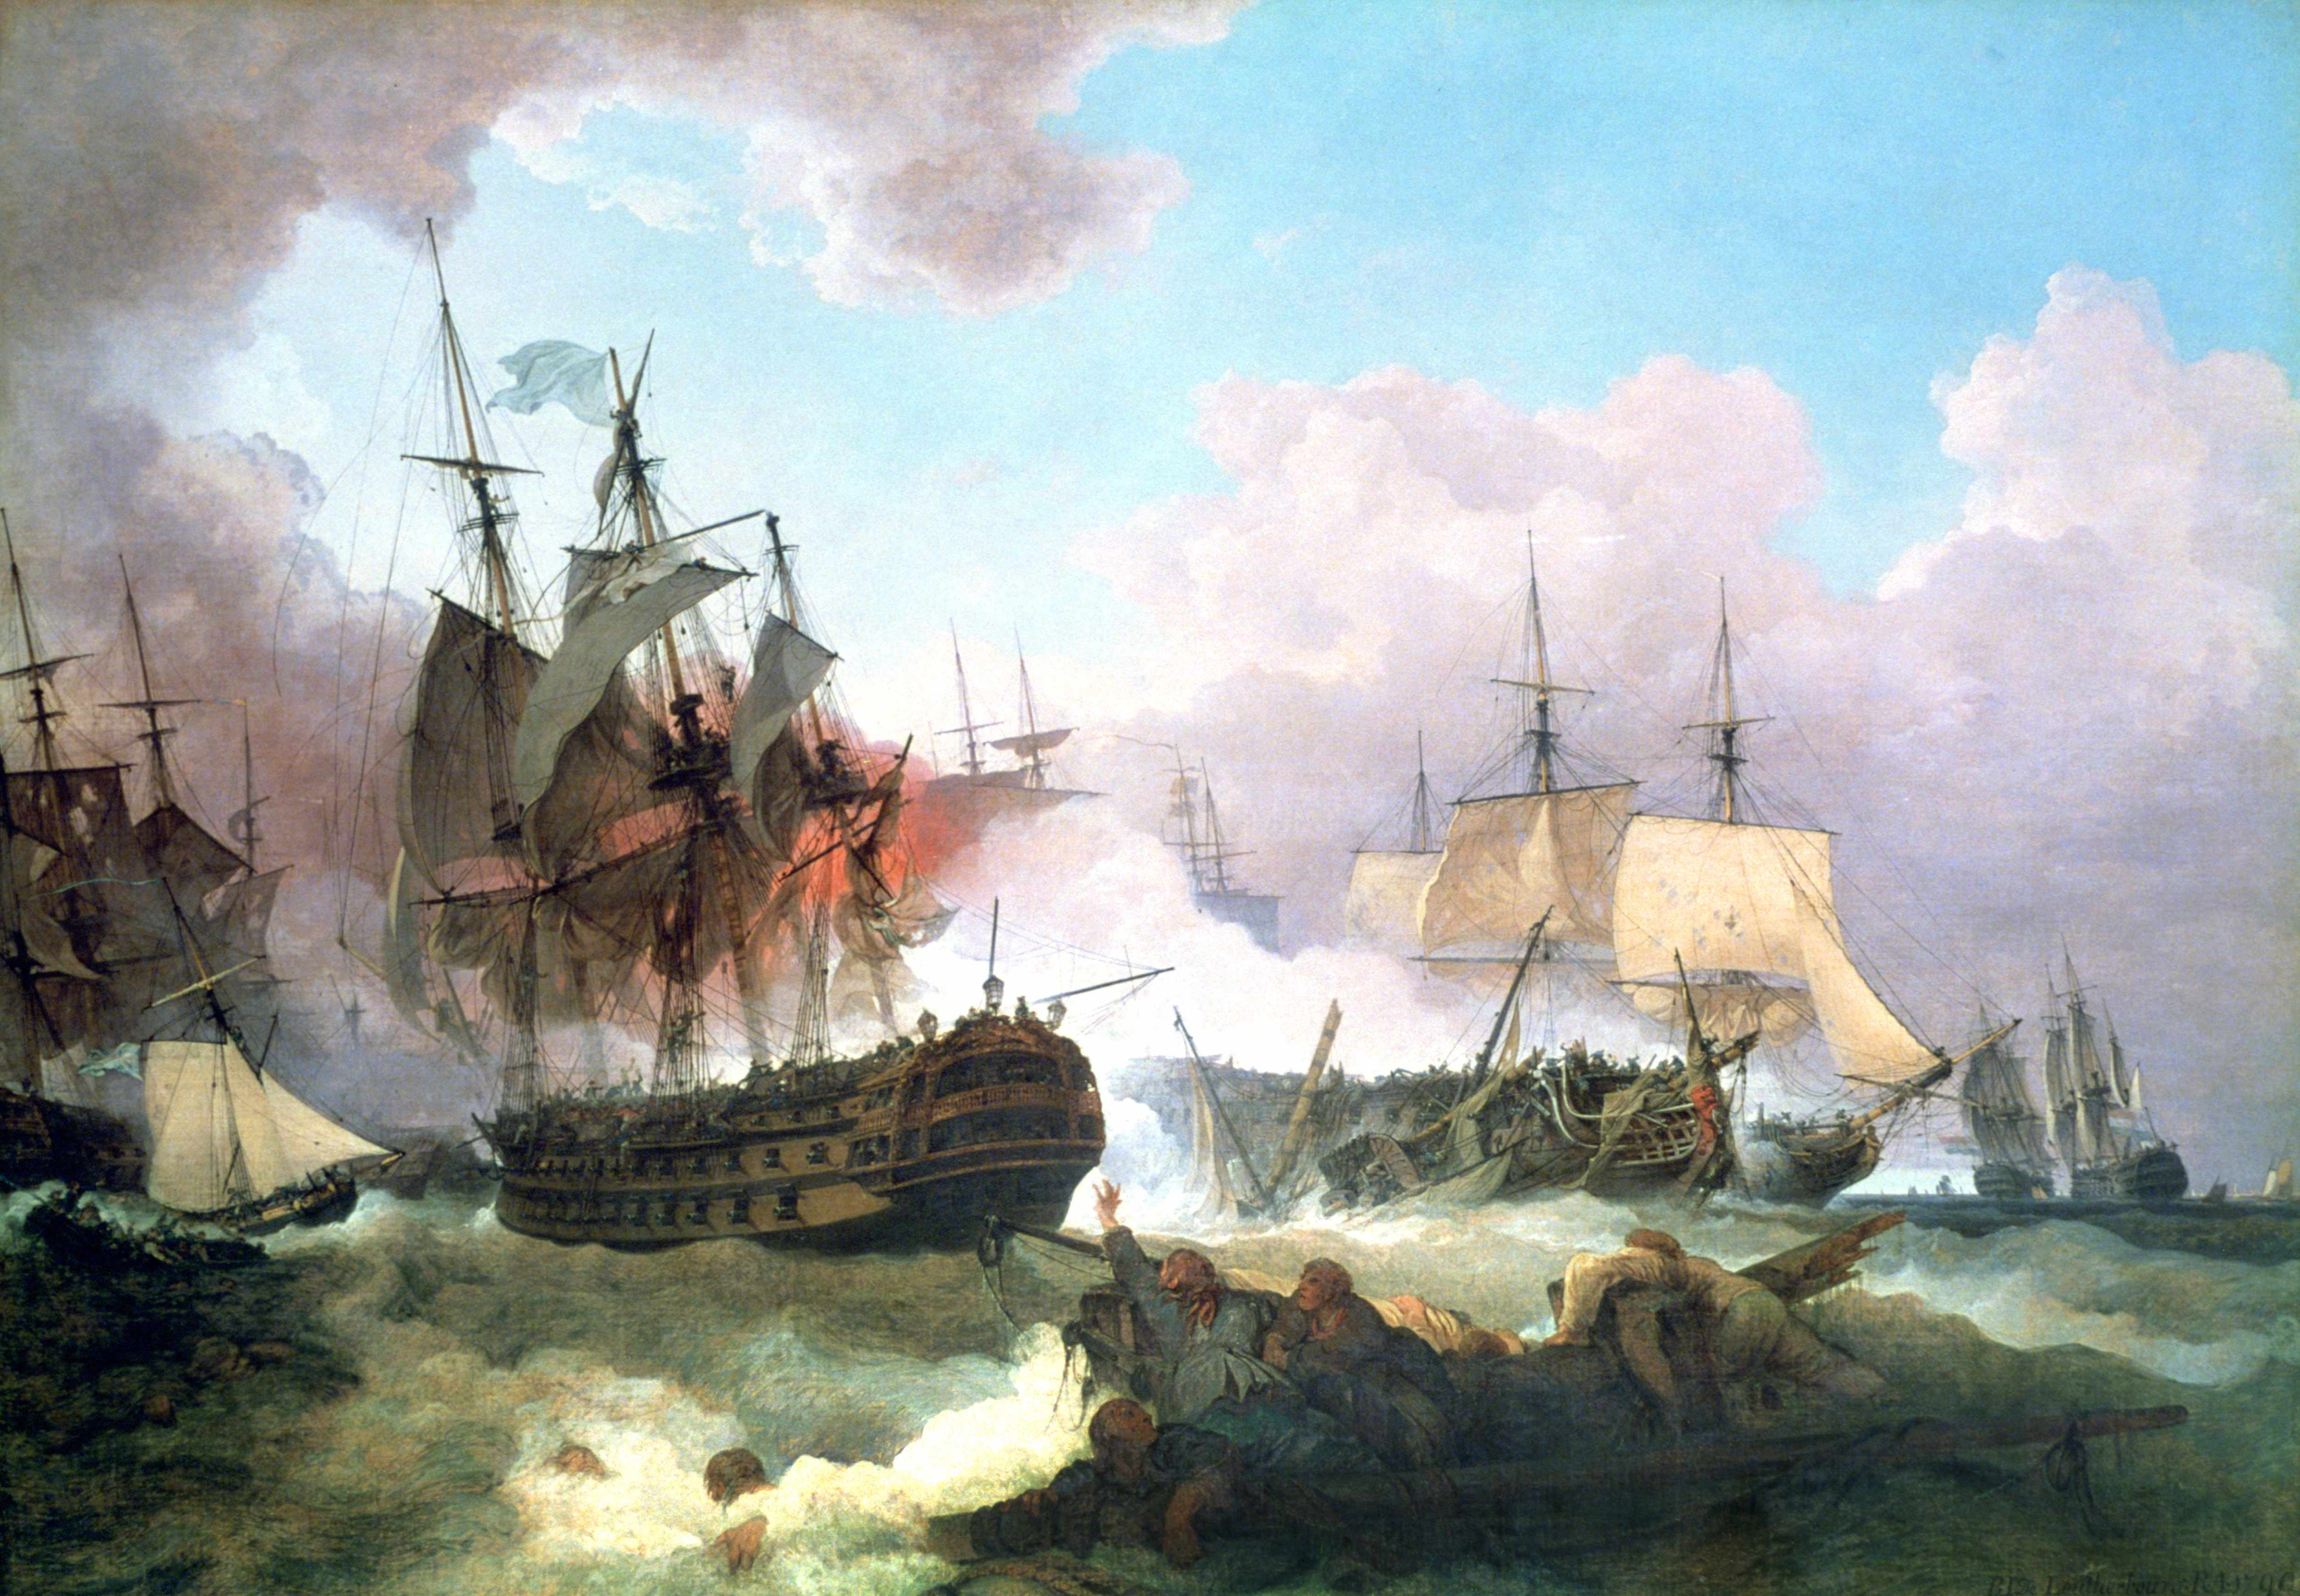 """An oil painting depicting the battle of Camperdown,a """"crushing British victory"""" over the Batavian (Dutch) Republic in the North Sea. (Universal History Archive/Getty Images)"""